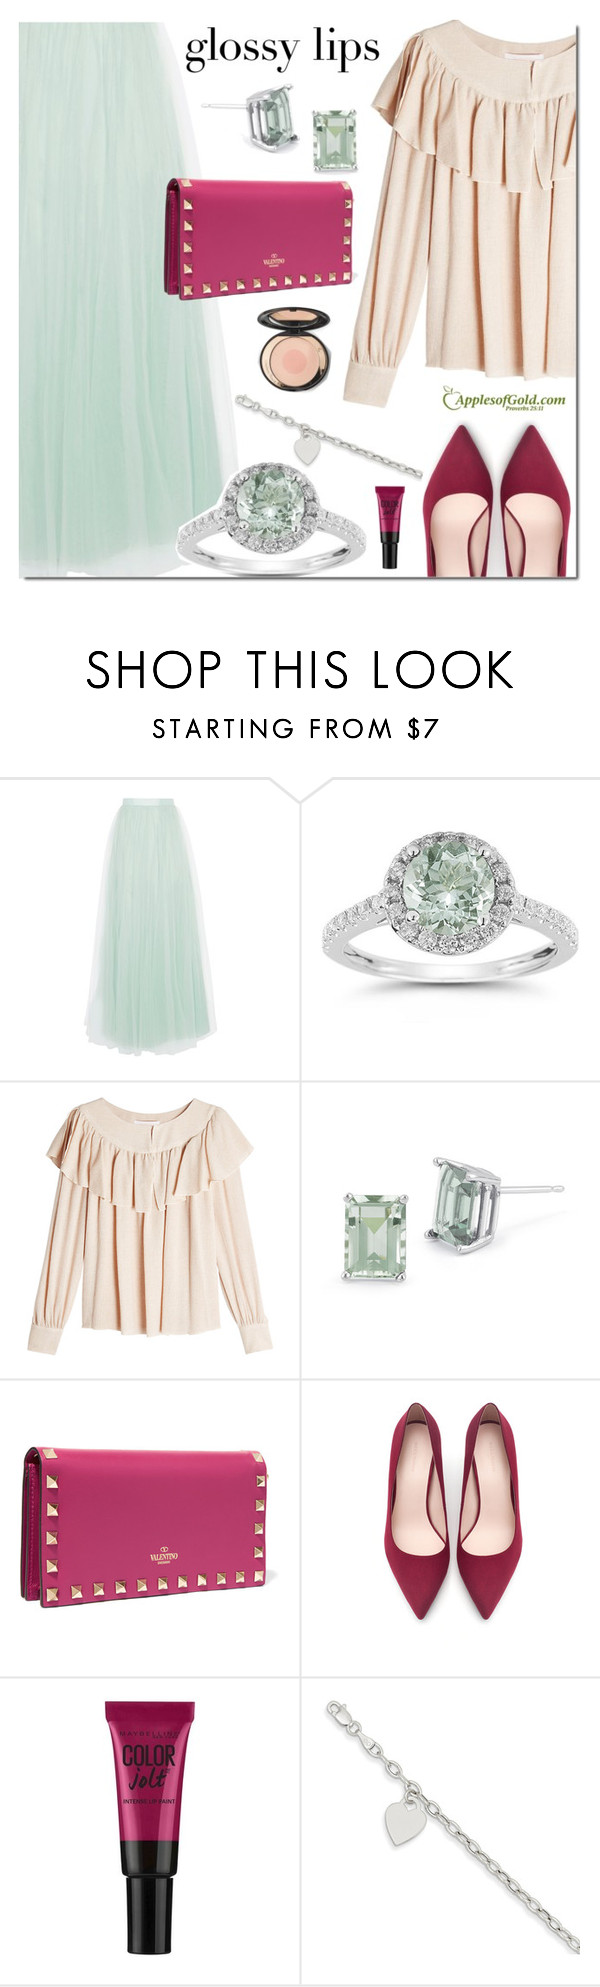 """""""ApplesofGold.com Green Amethyst Jewelry"""" by mada-malureanu ❤ liked on Polyvore featuring Coast, See by Chloé, Valentino, Zara, Maybelline, contestentry, glossylips and applesofgold"""